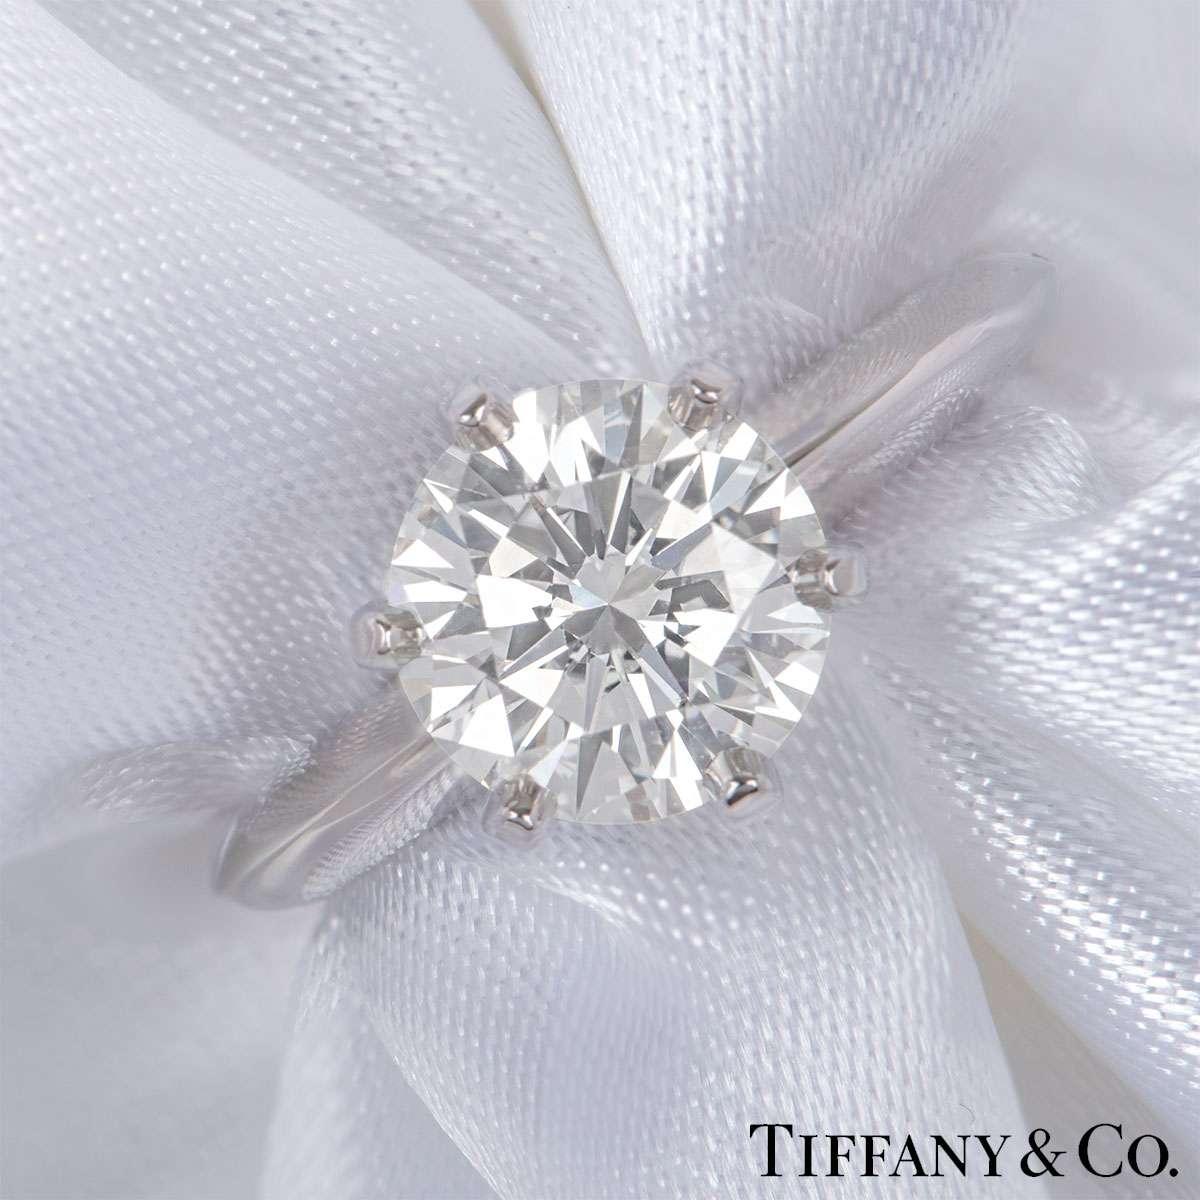 Tiffany & Co. Platinum Diamond Setting Band Ring 2.11ct G/VVS2